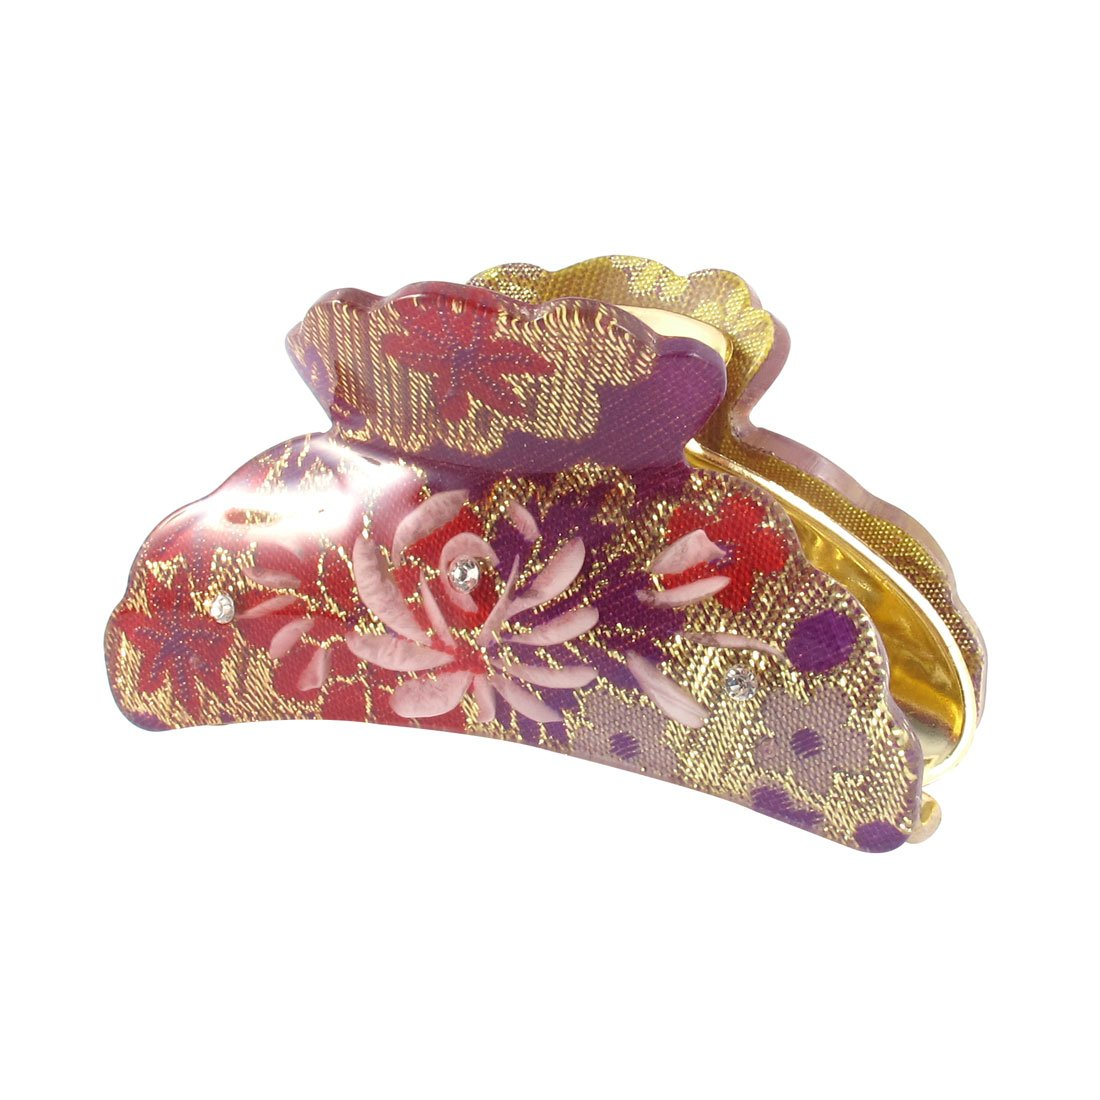 Sourcingmap Kunststoff Frau Clamp Zähne Design Hair Clip Claw 8, 9 cm Länge Purple 9 cm Länge Purple a15020600ux0087